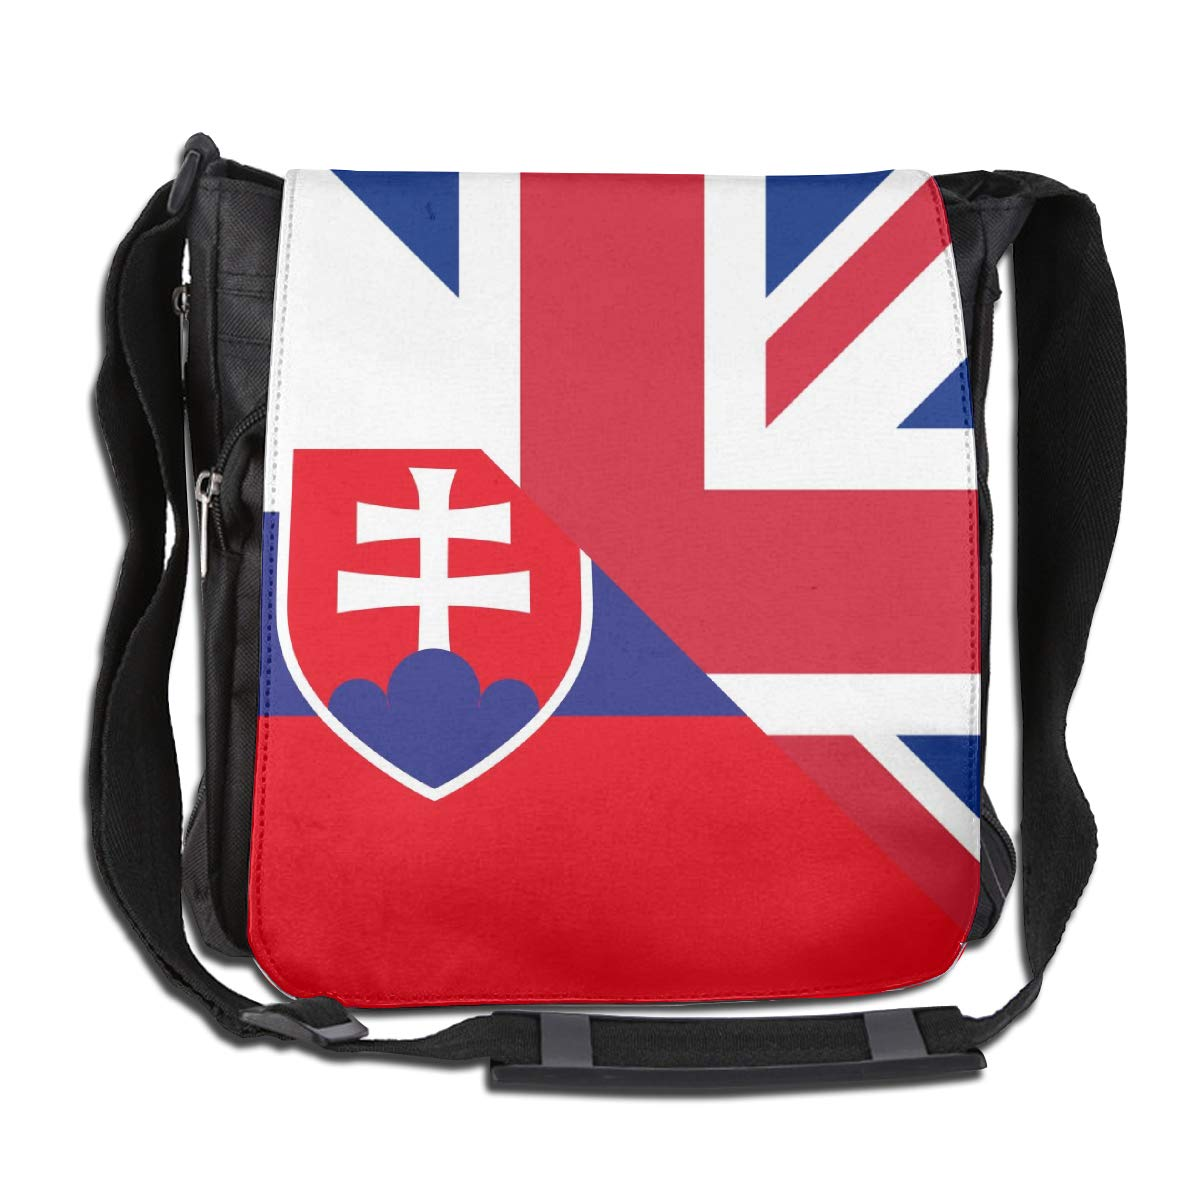 Unisex Stylish Satchel Messenger Bags Birtish And Slovenia Flag Crossbody Shoulder Bag Side Bags For School//Work//Trips